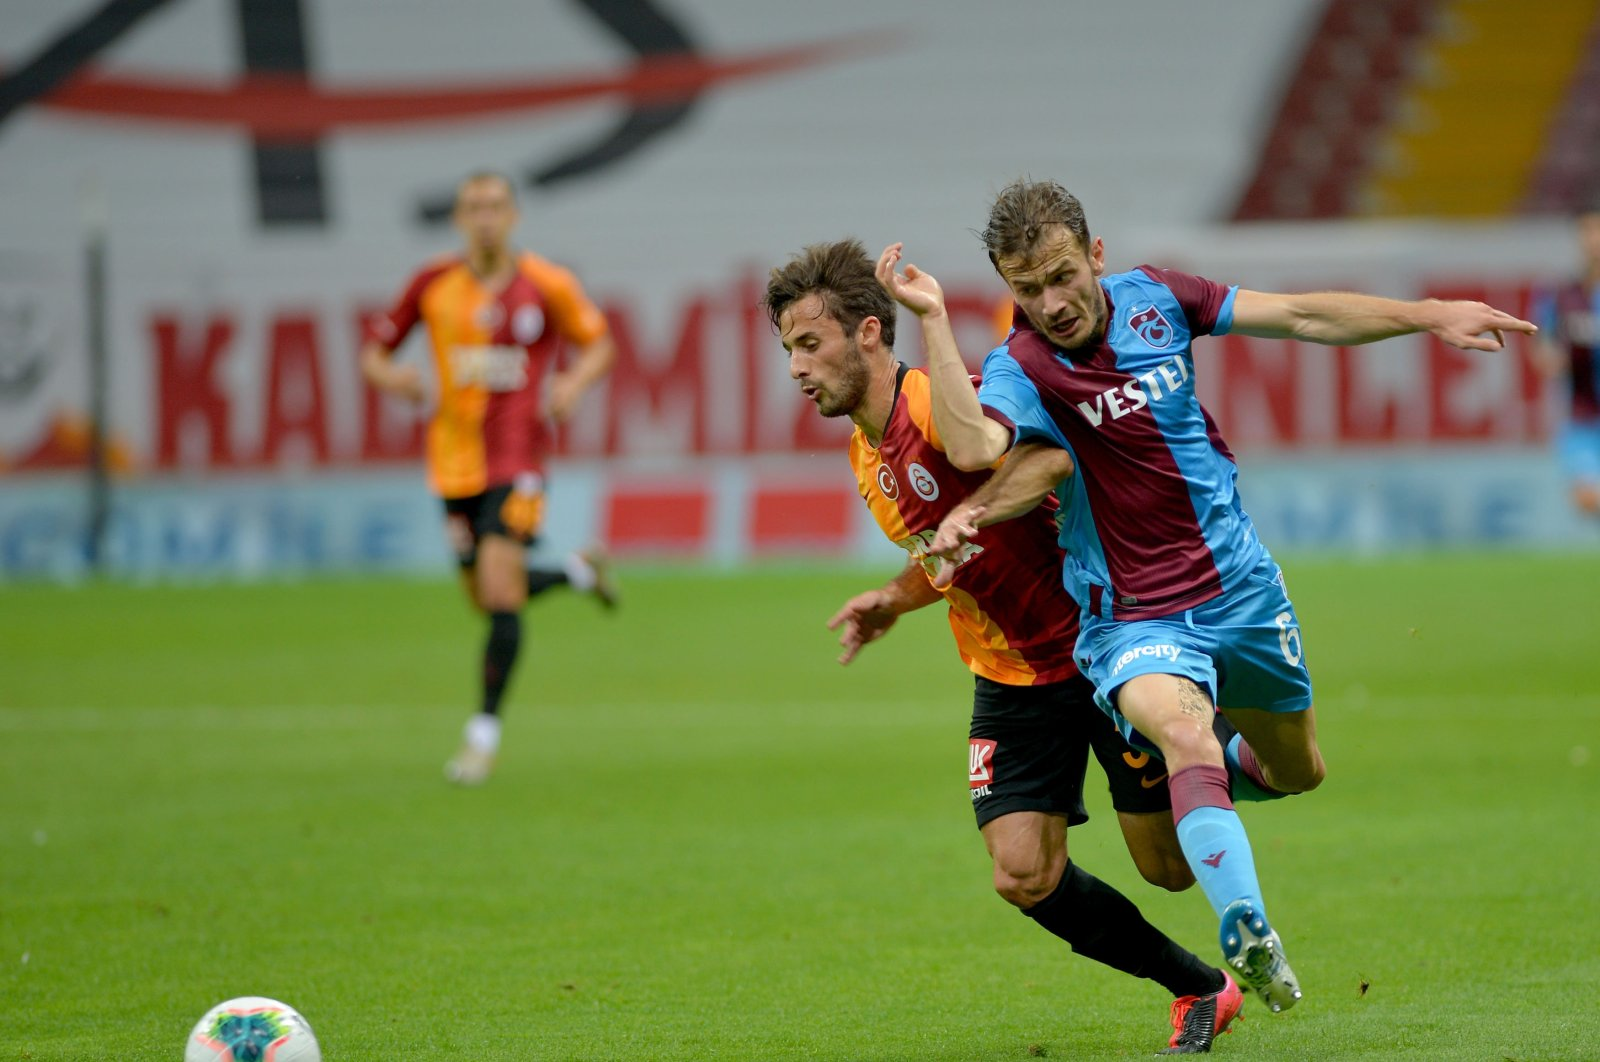 Galatasaray's Marcelo Saracchi (L) and Trabzonspor's Abdülkadir Parmak compete for the ball during a Süper Lig match at Türk Telekom Arena in Istanbul, Turkey, July 5, 2020. (DHA Photo)